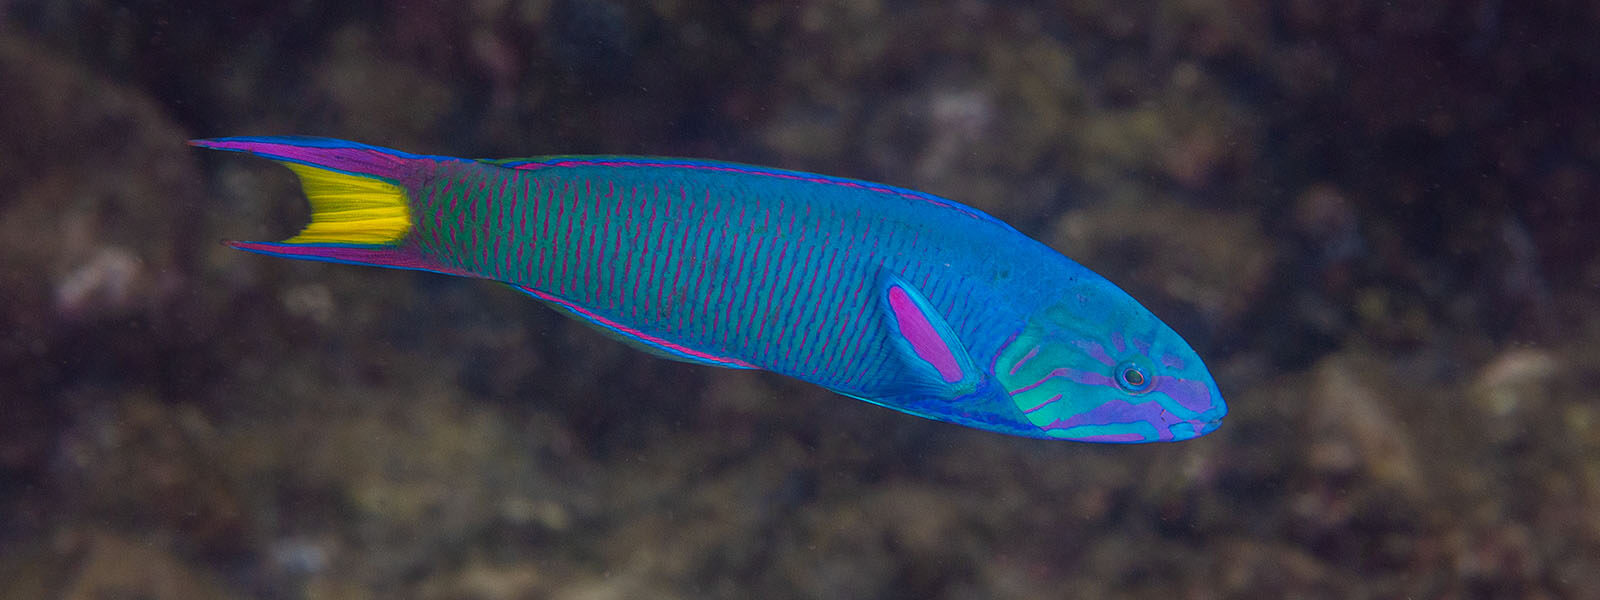 Crescent tail wrasse is a good fish mascot for our total solar eclipse snorkeling tour